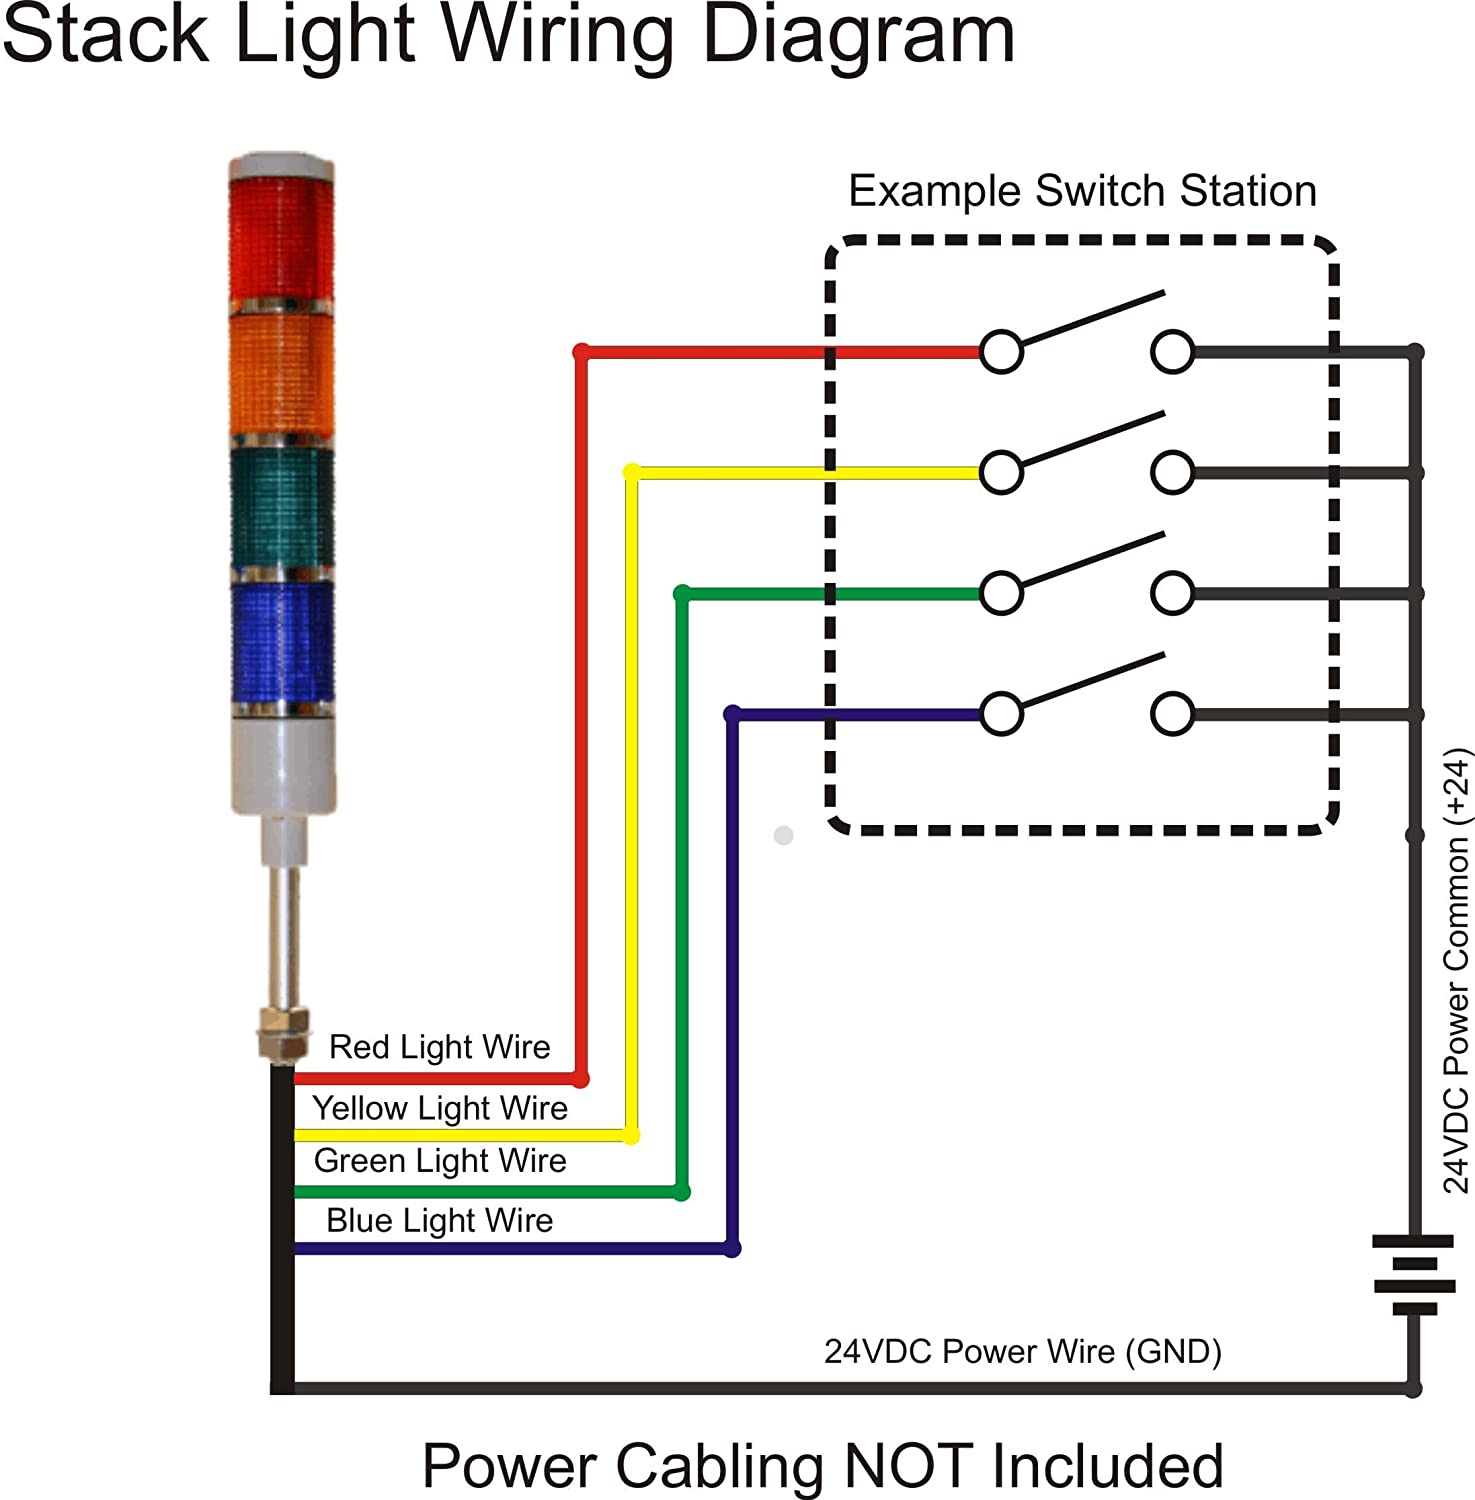 American Led Gible Ld 5224 100 Tower Light Andon 24 Vdc Wiring Diagram Stacklight 24vdc Red Yellow Green Blue Steady Stack Lights